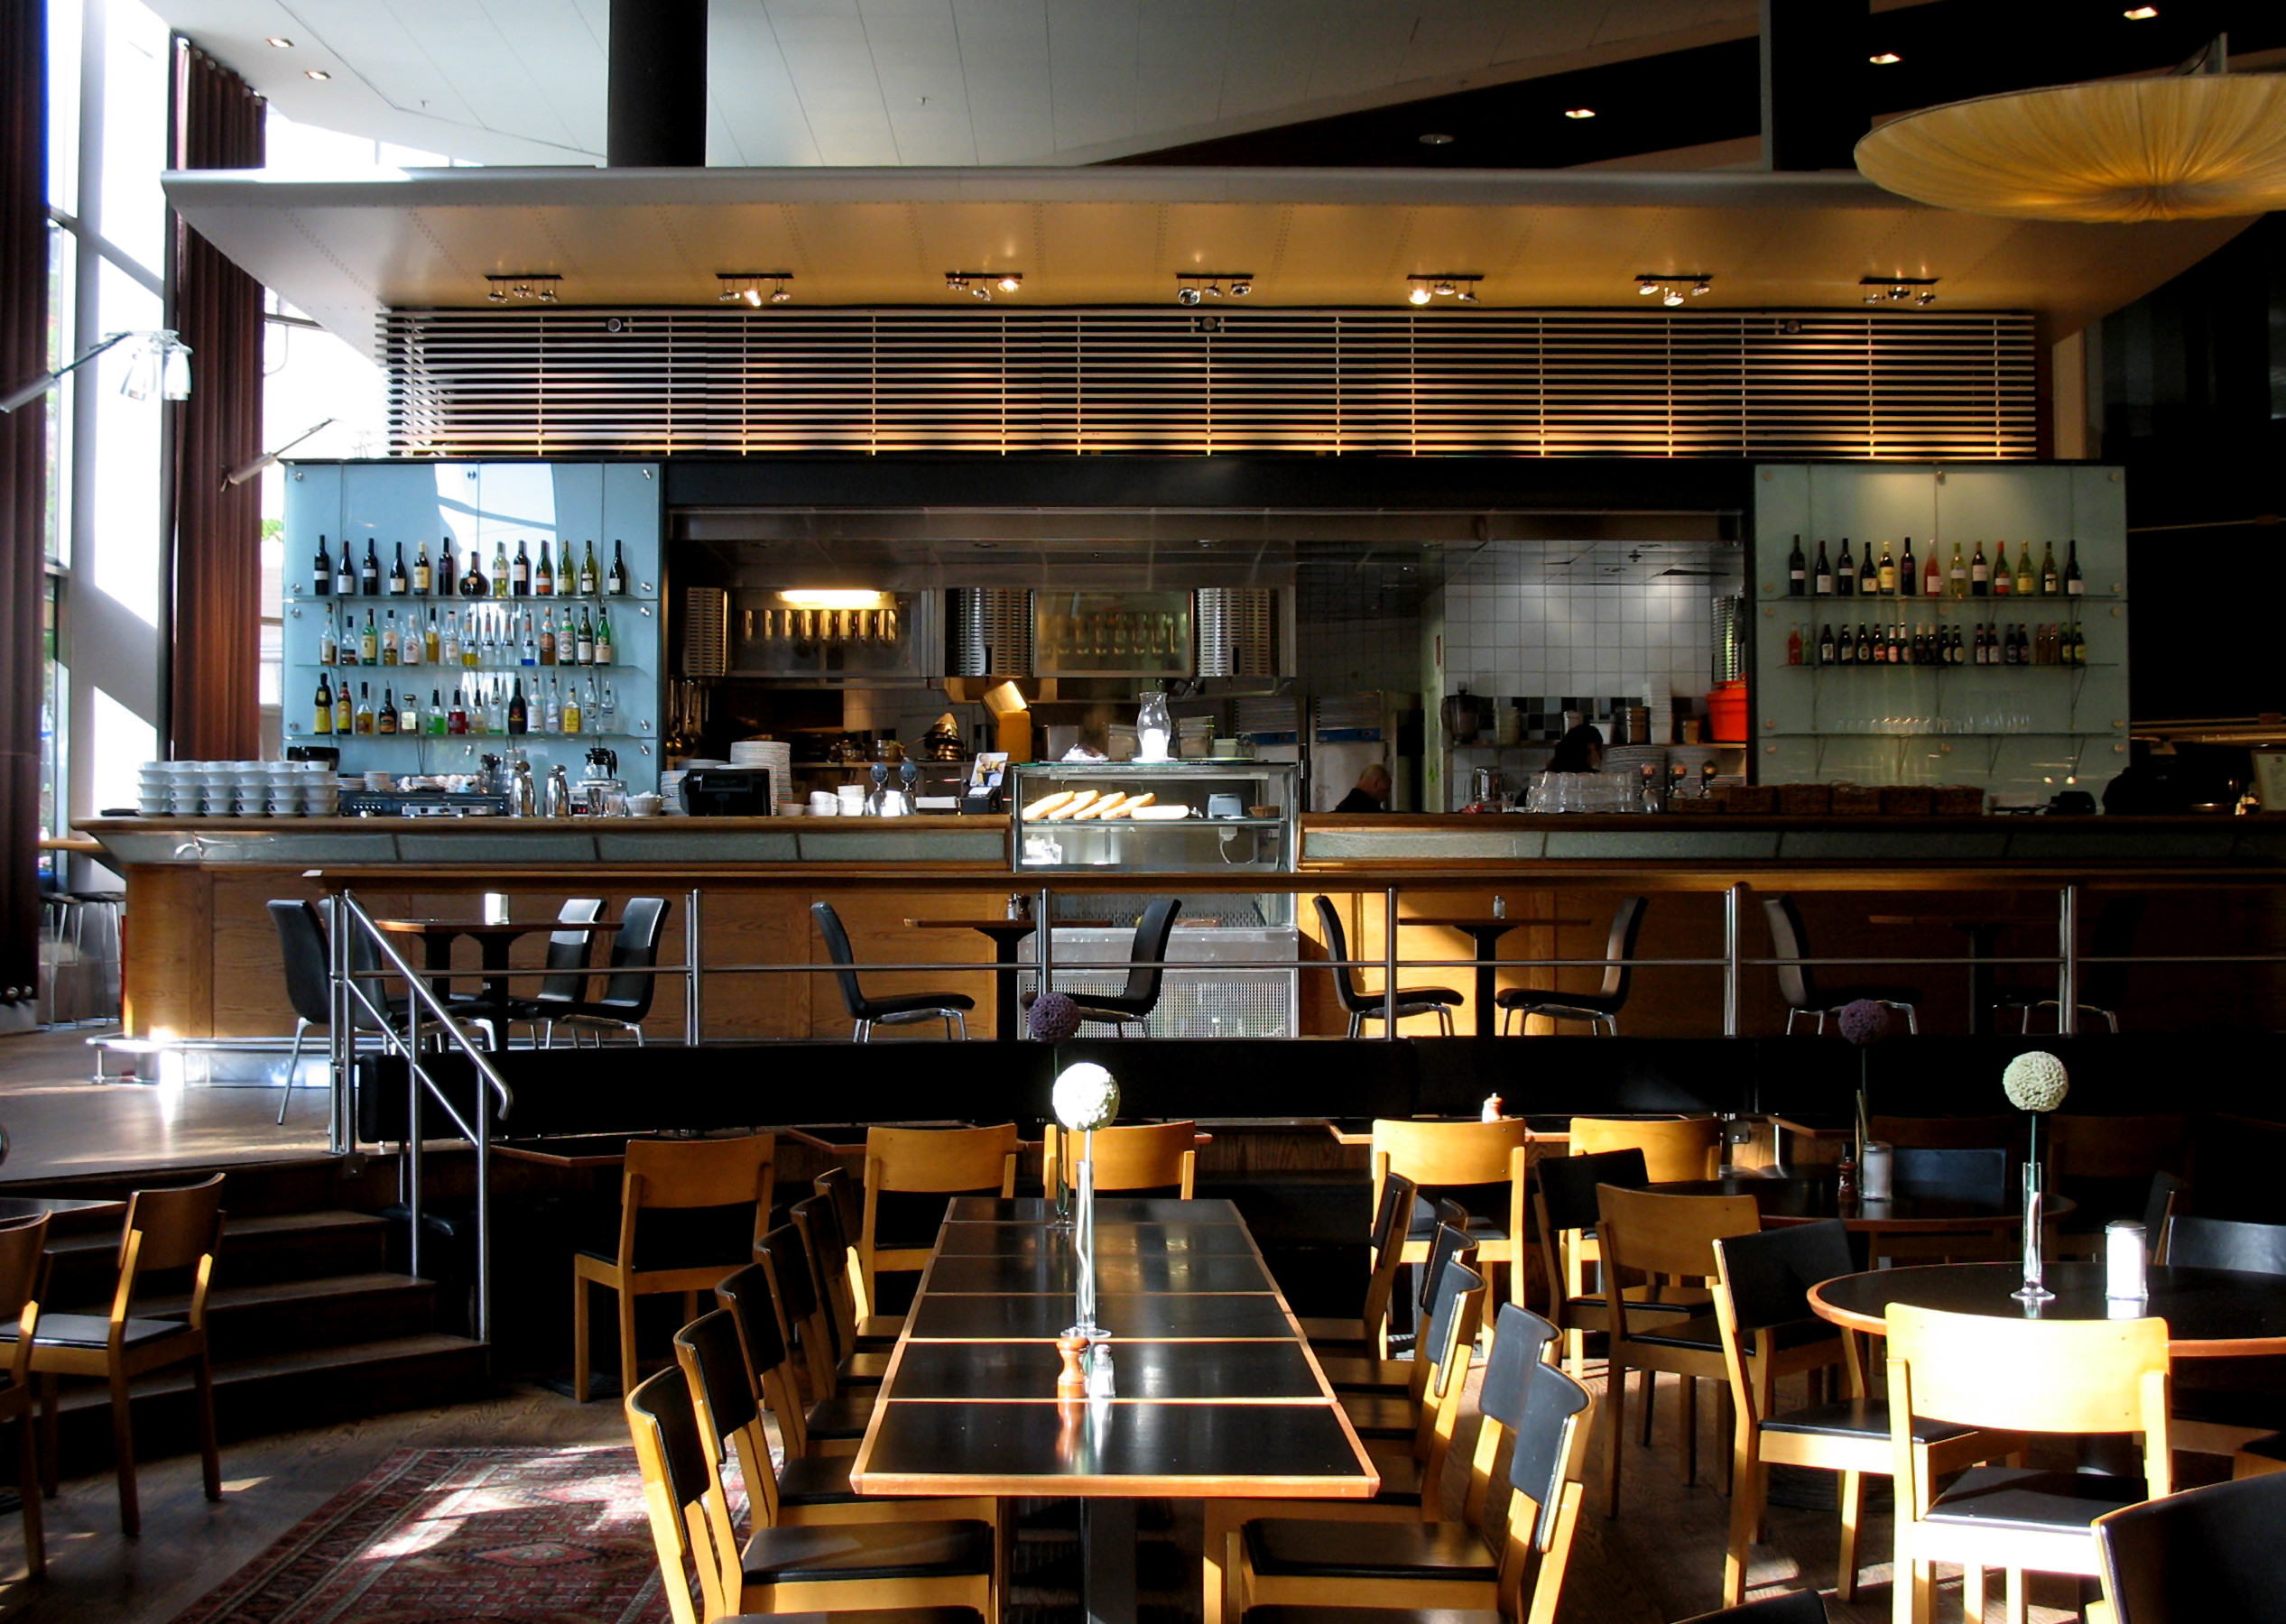 trendy-bar-front-in-restaurant A & A Pest Control | Manchester, CT - Get $25  OFF Seasonal Services